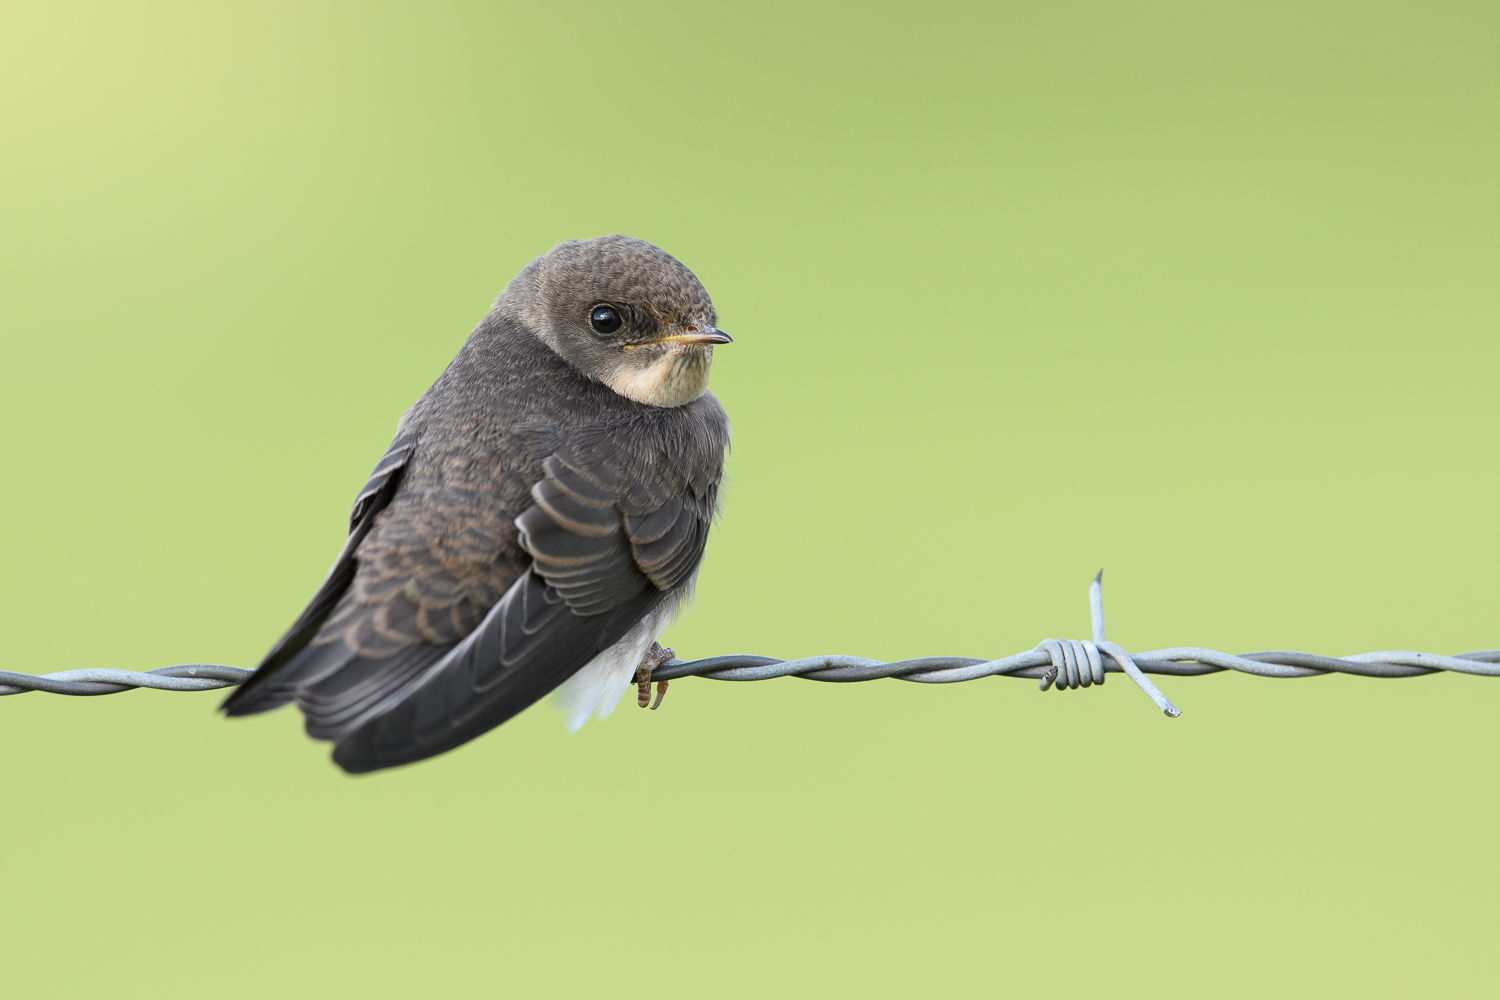 Sand Martin on Barb Wire Fence